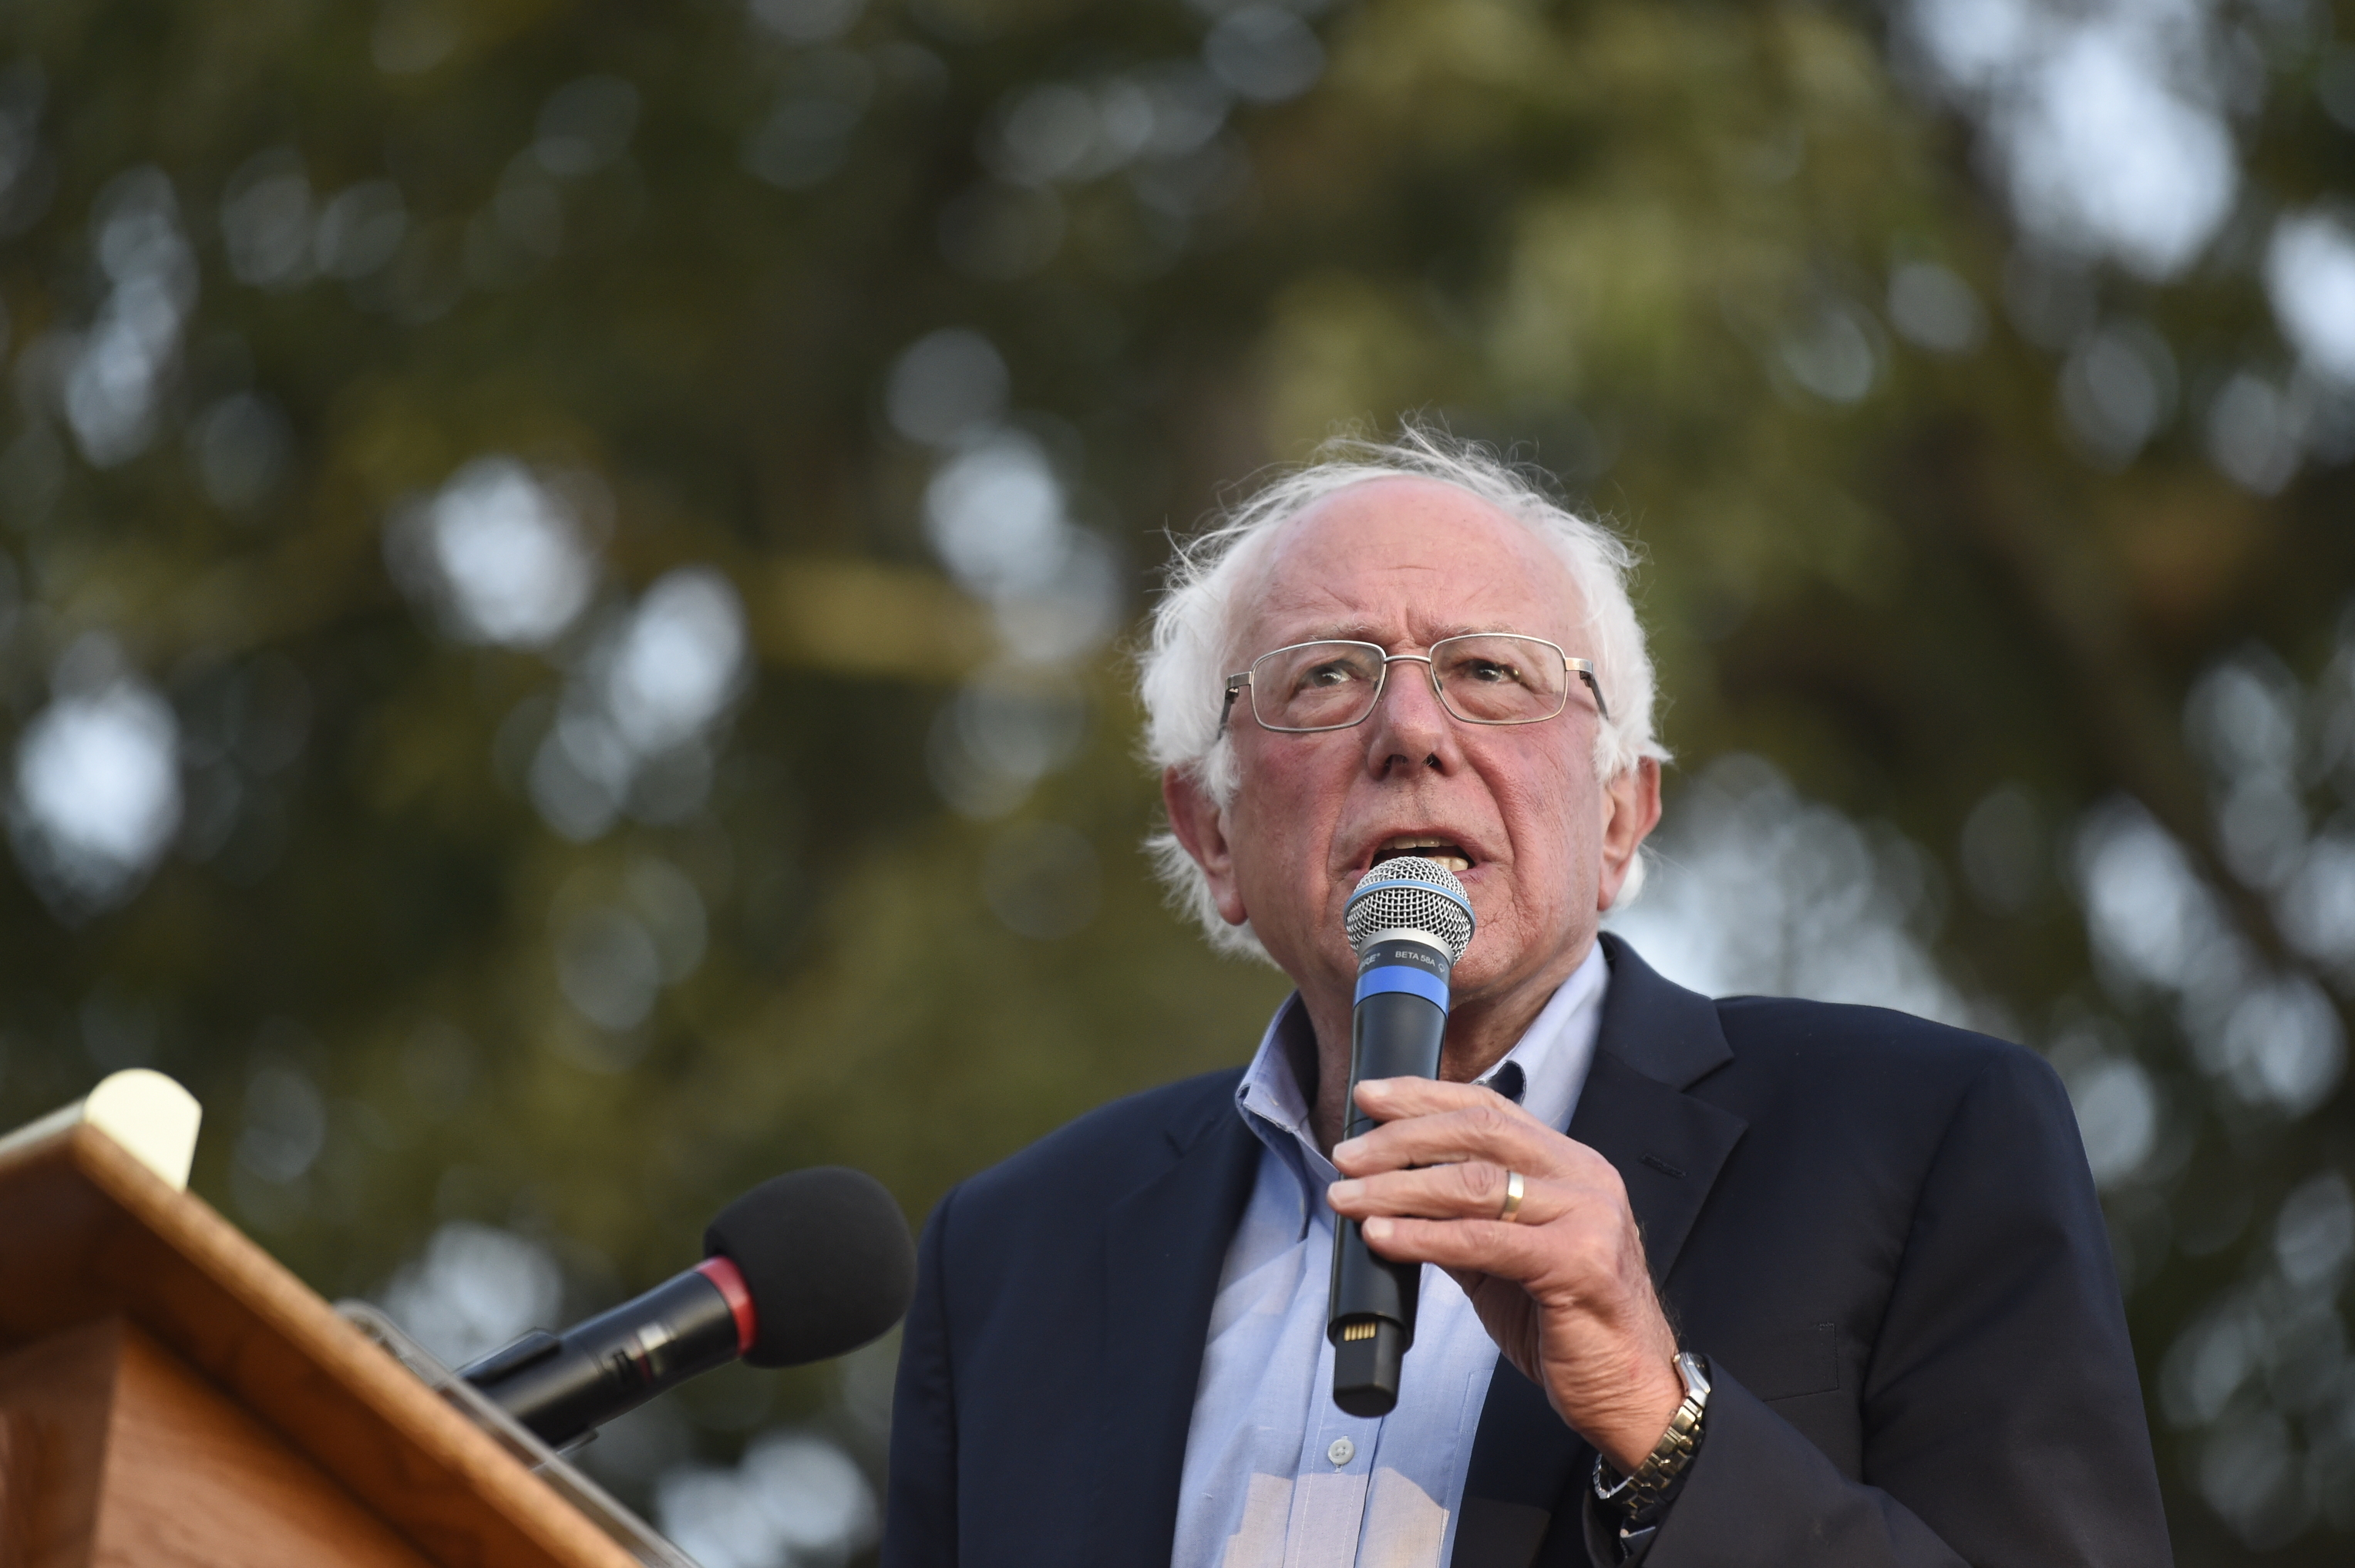 Democratic presidential contender U.S. Sen. Bernie Sanders, from Vermont, addresses a crowd at Winthrop University as part of his college campus tour, Friday, Sept. 20, 2019, in Rock Hill, S.C.